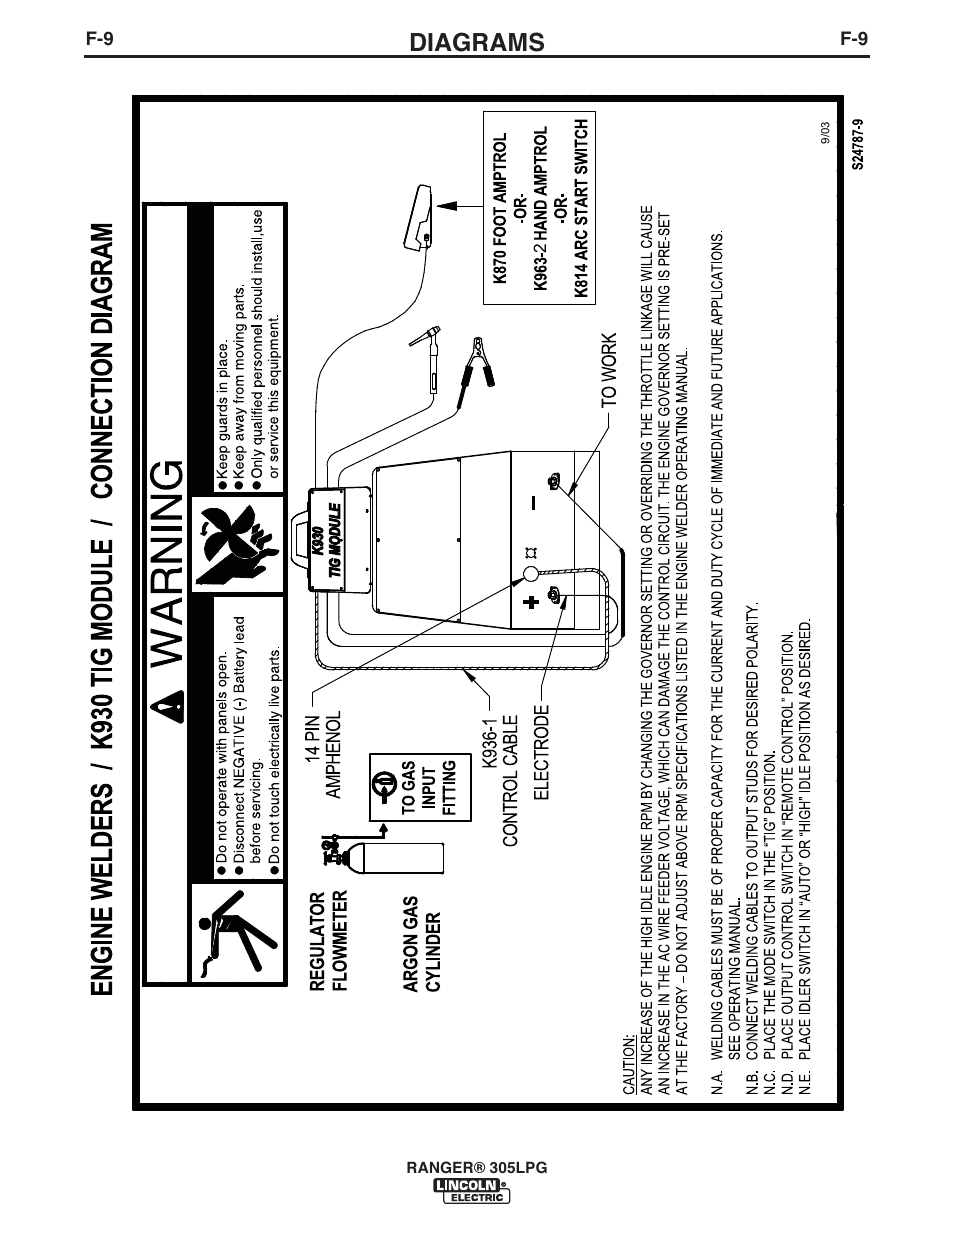 medium resolution of diagrams lincoln electric im10043 ranger 305 lpg user manual page 45 52